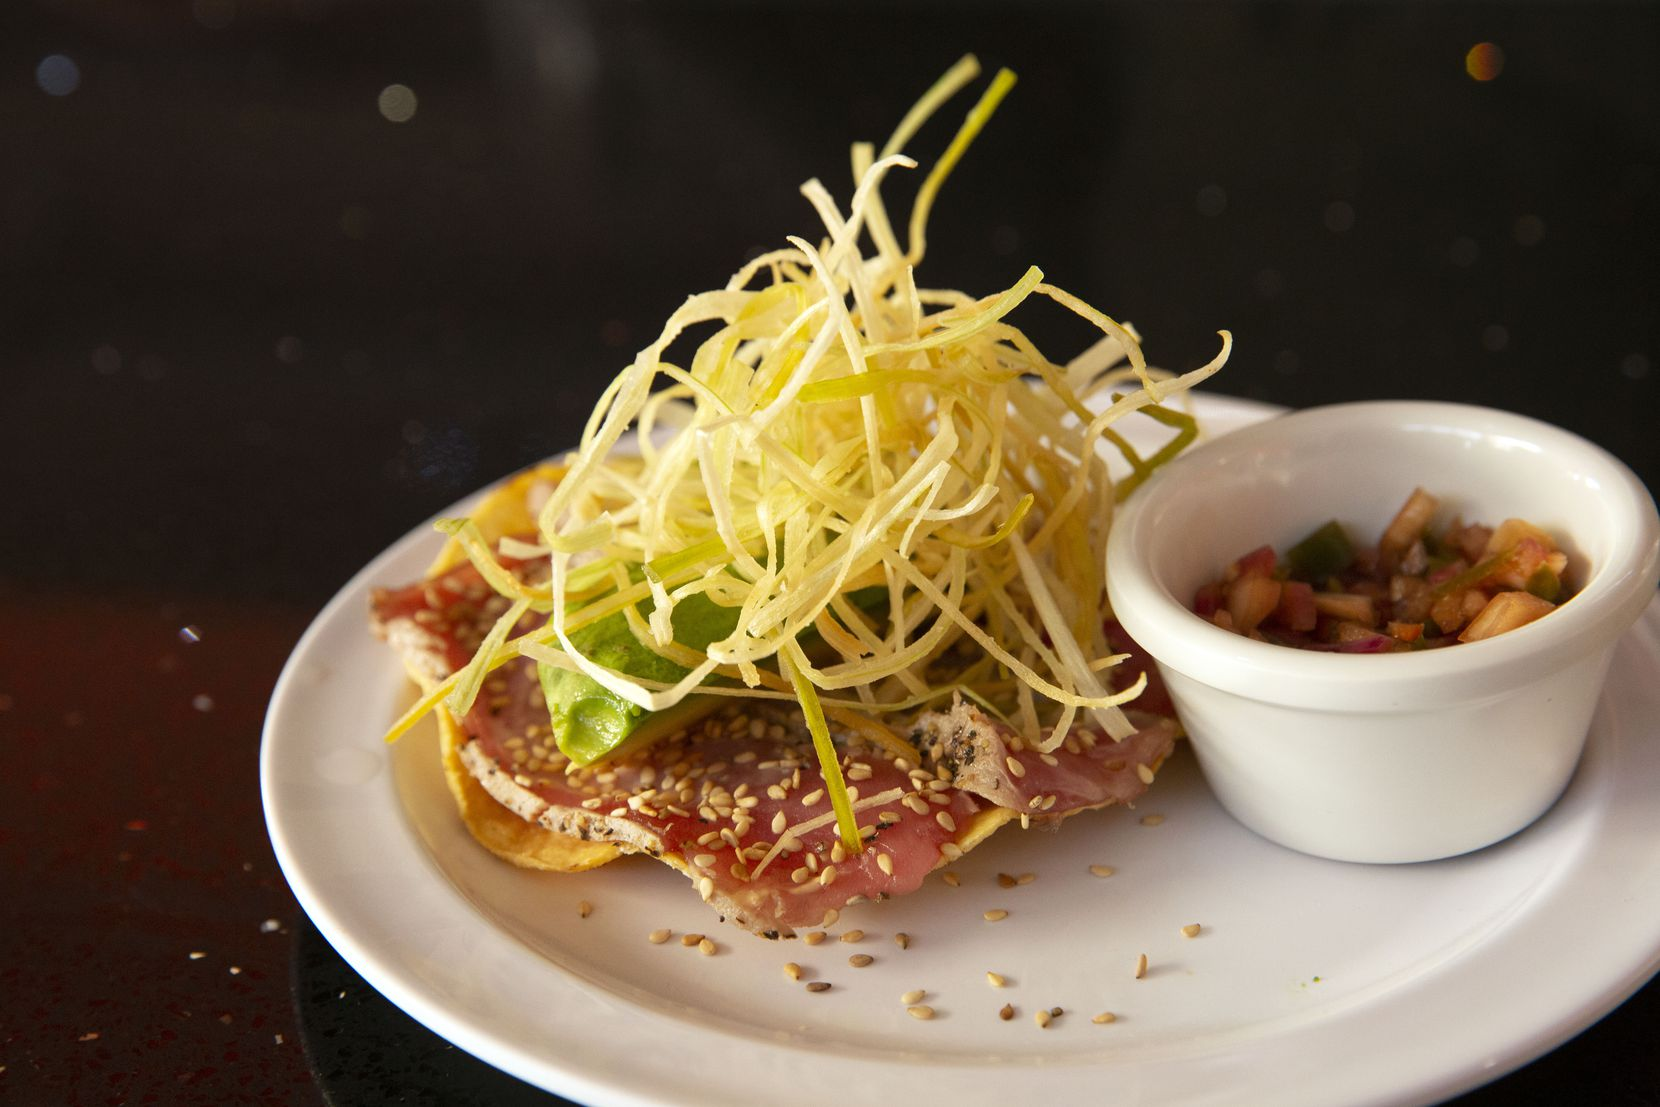 Caribbean's Shark Seafood features tuna with avocado, chipotle sauce on a tostada topped off with leeks.